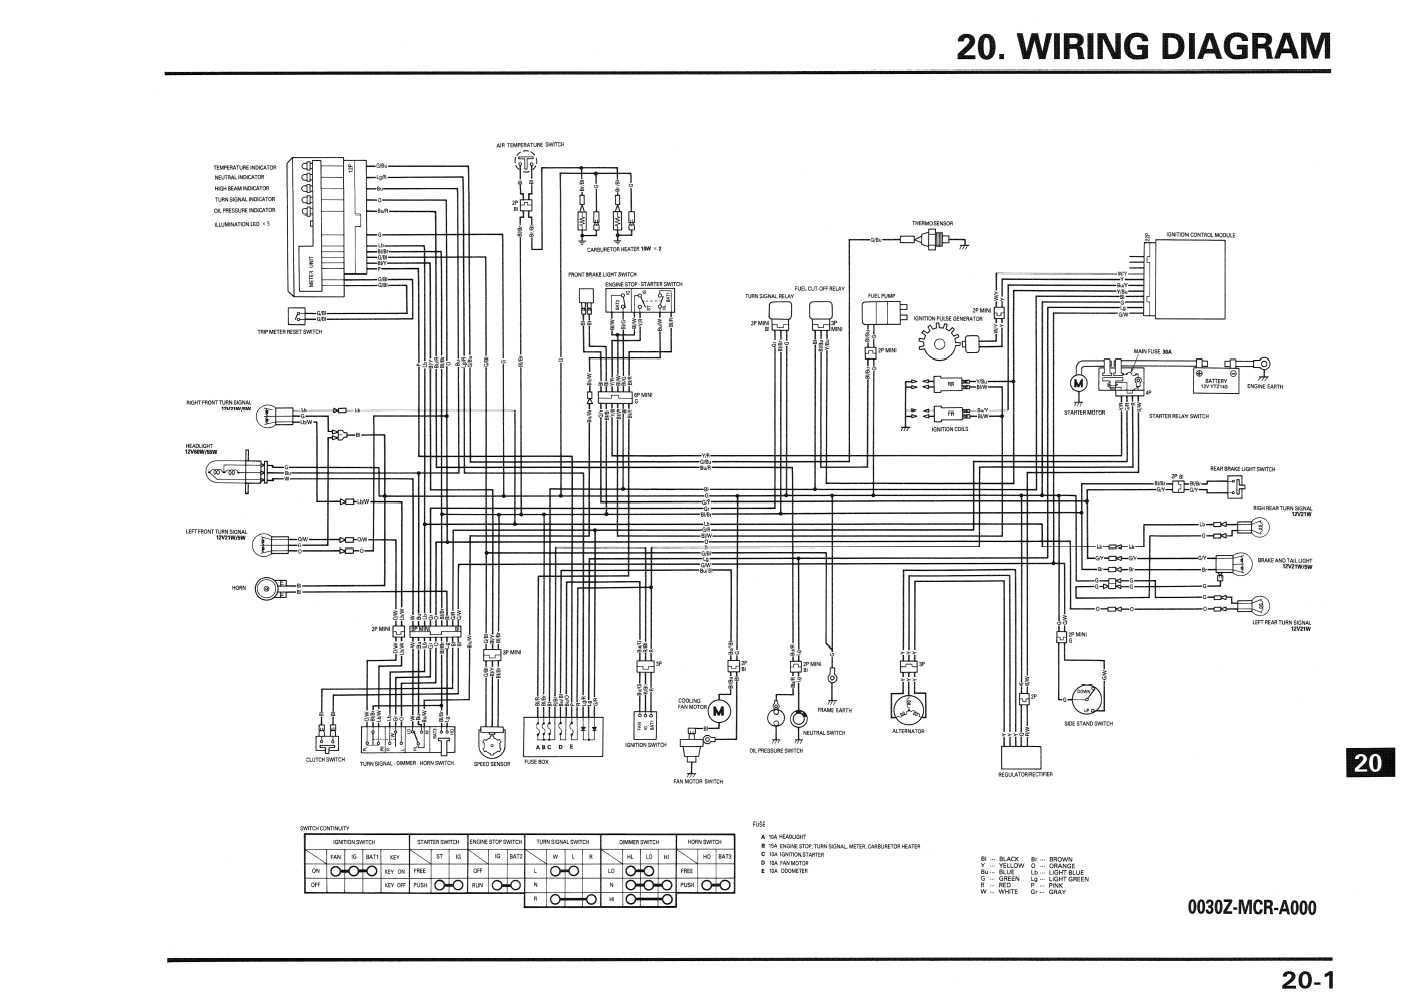 Wiring A Shop Diagram Data Today Vn Alternator Honda Vt750dc Manual 1962 Ford Truck